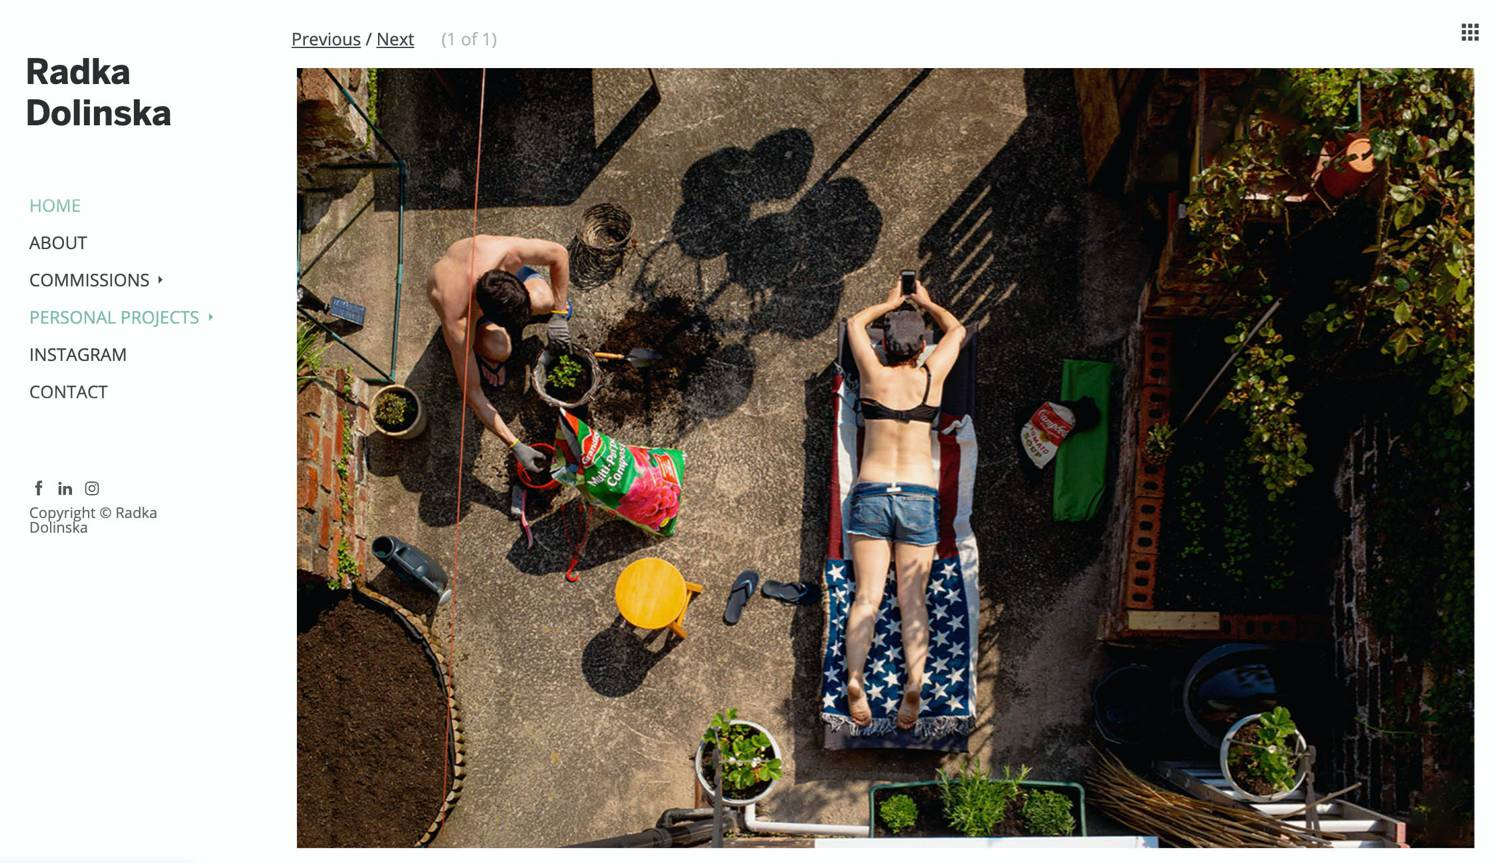 Website: Radka Dolinska's overhead image shows a man potting plants on a patio as his partner reclines on a lounge chair.